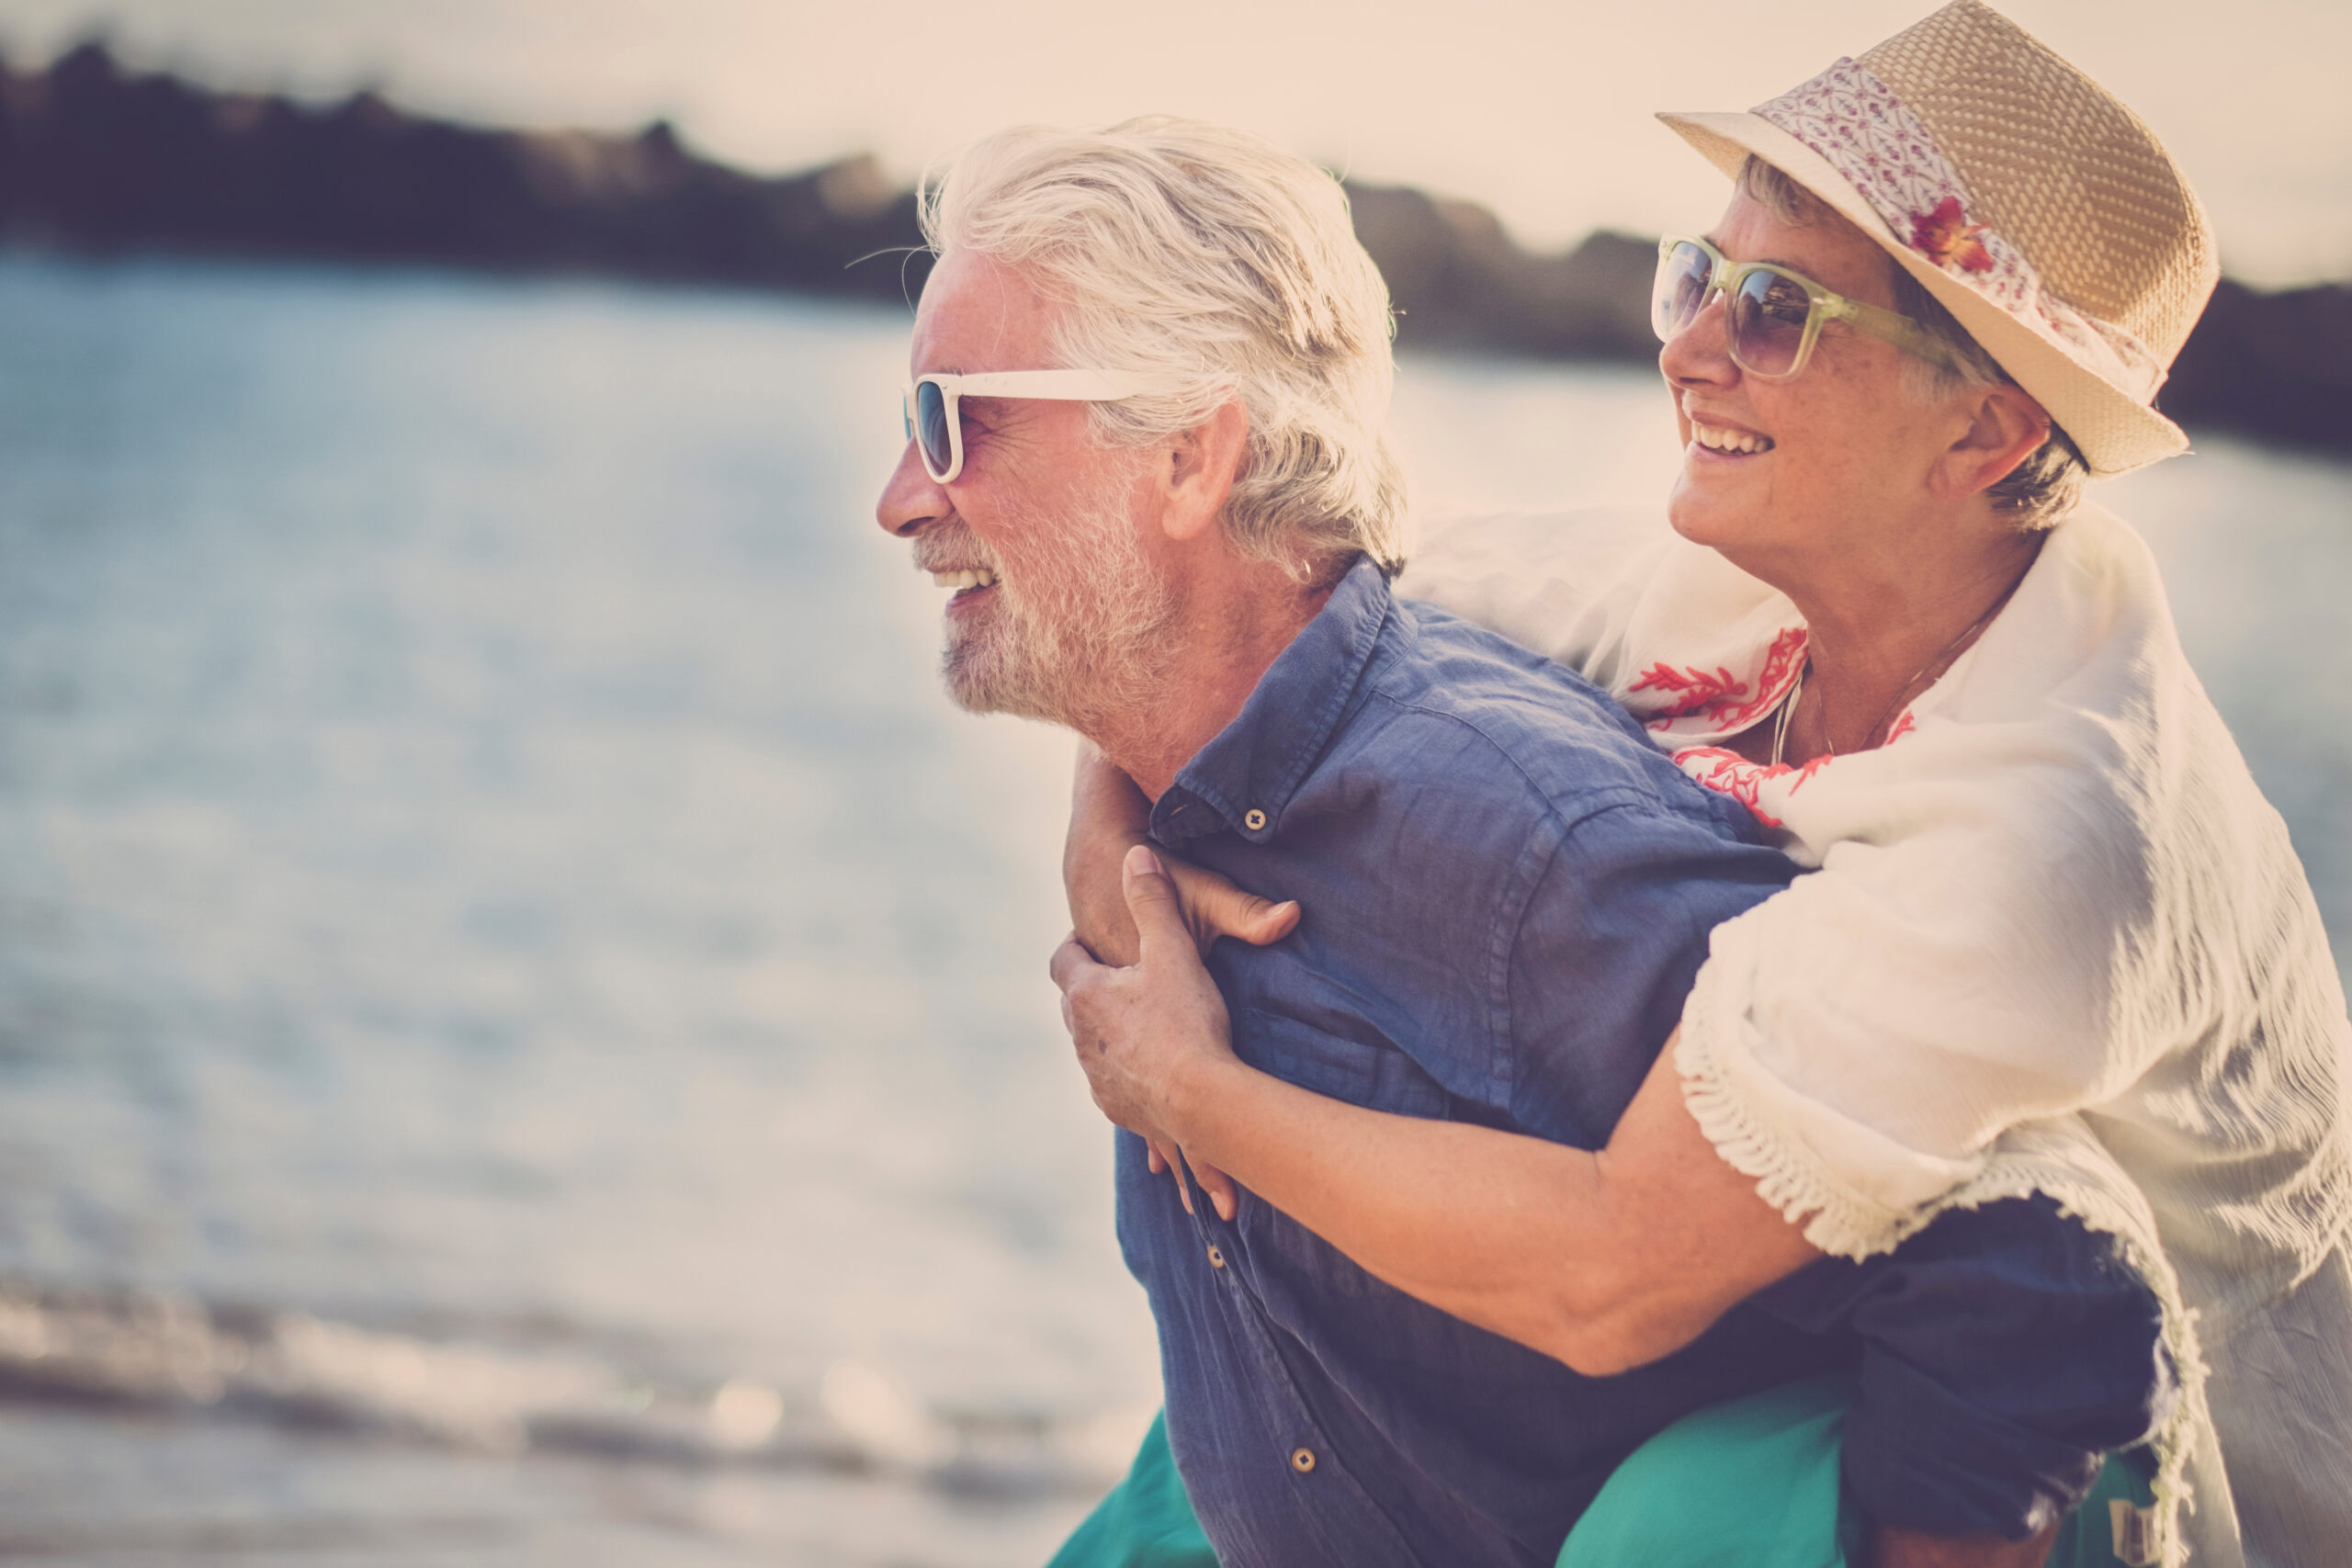 happy senior couple have fun and enjoy outdoor leisure activity at the beach. the man carry the woman on his back to enjoy together a retired lifestyle at the beach. smiling and laughing persons